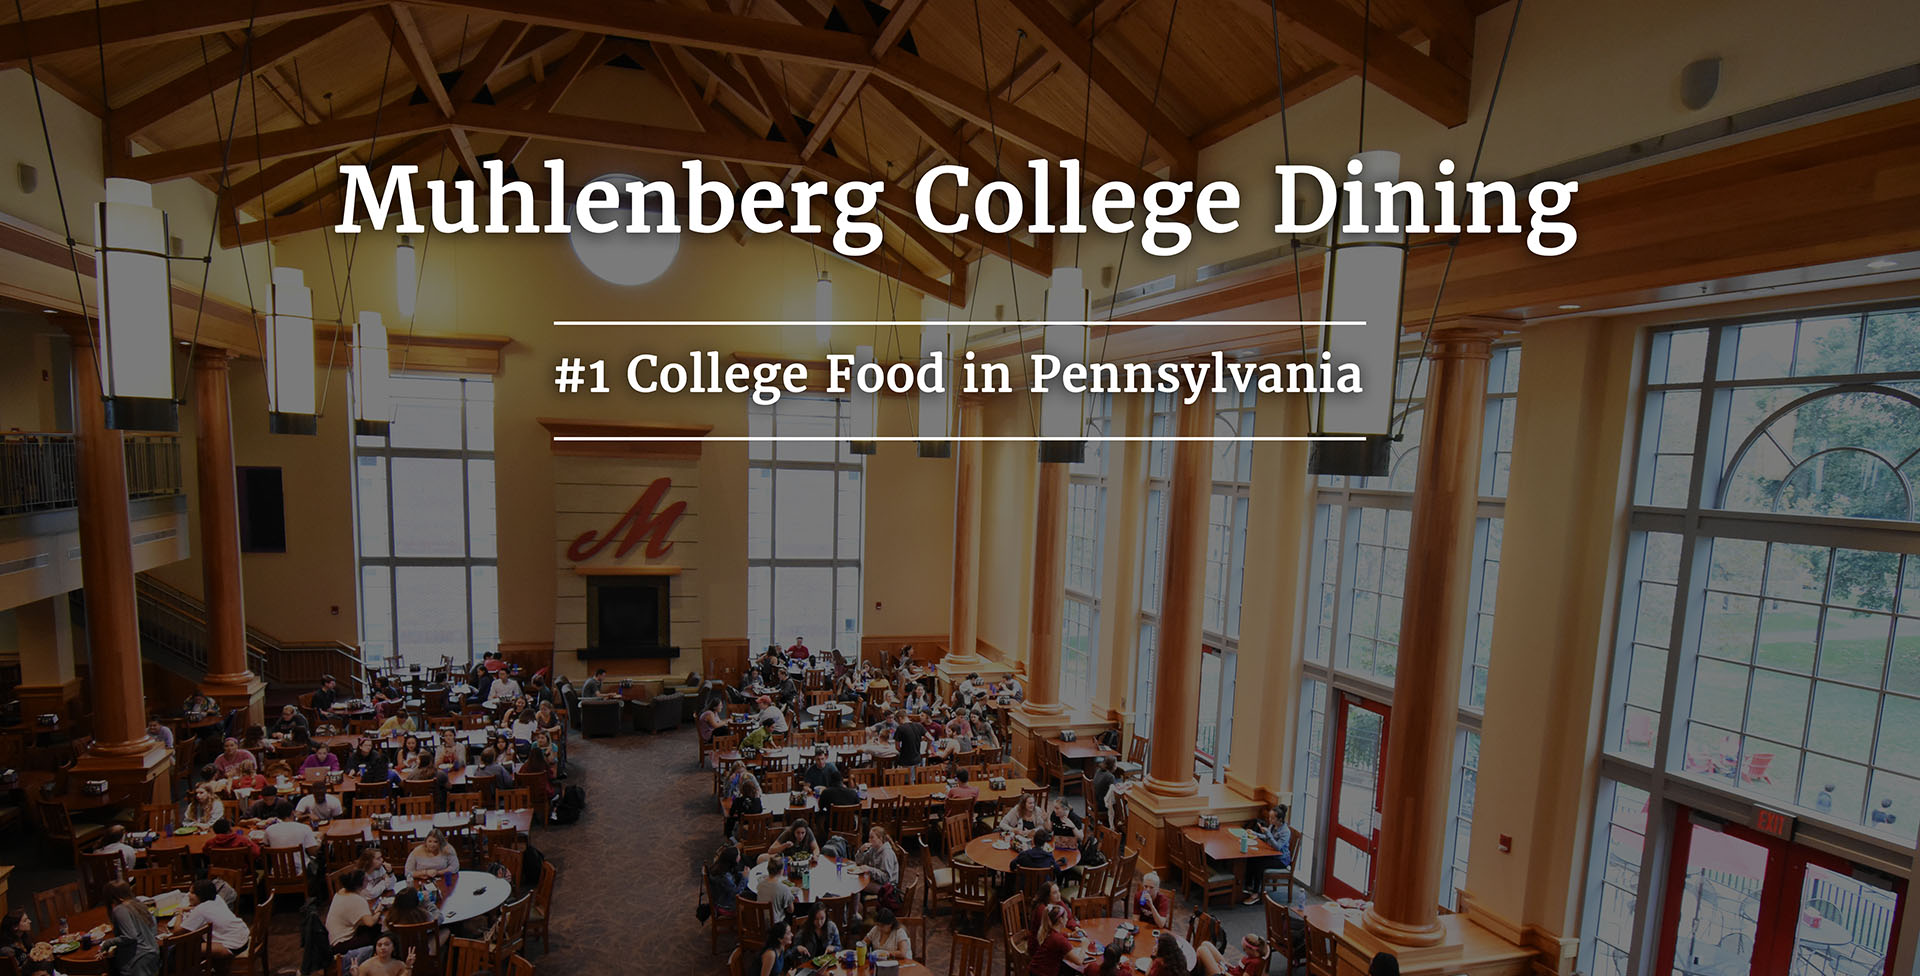 Muhlenberg College Dining number one college food in Pennsylvania